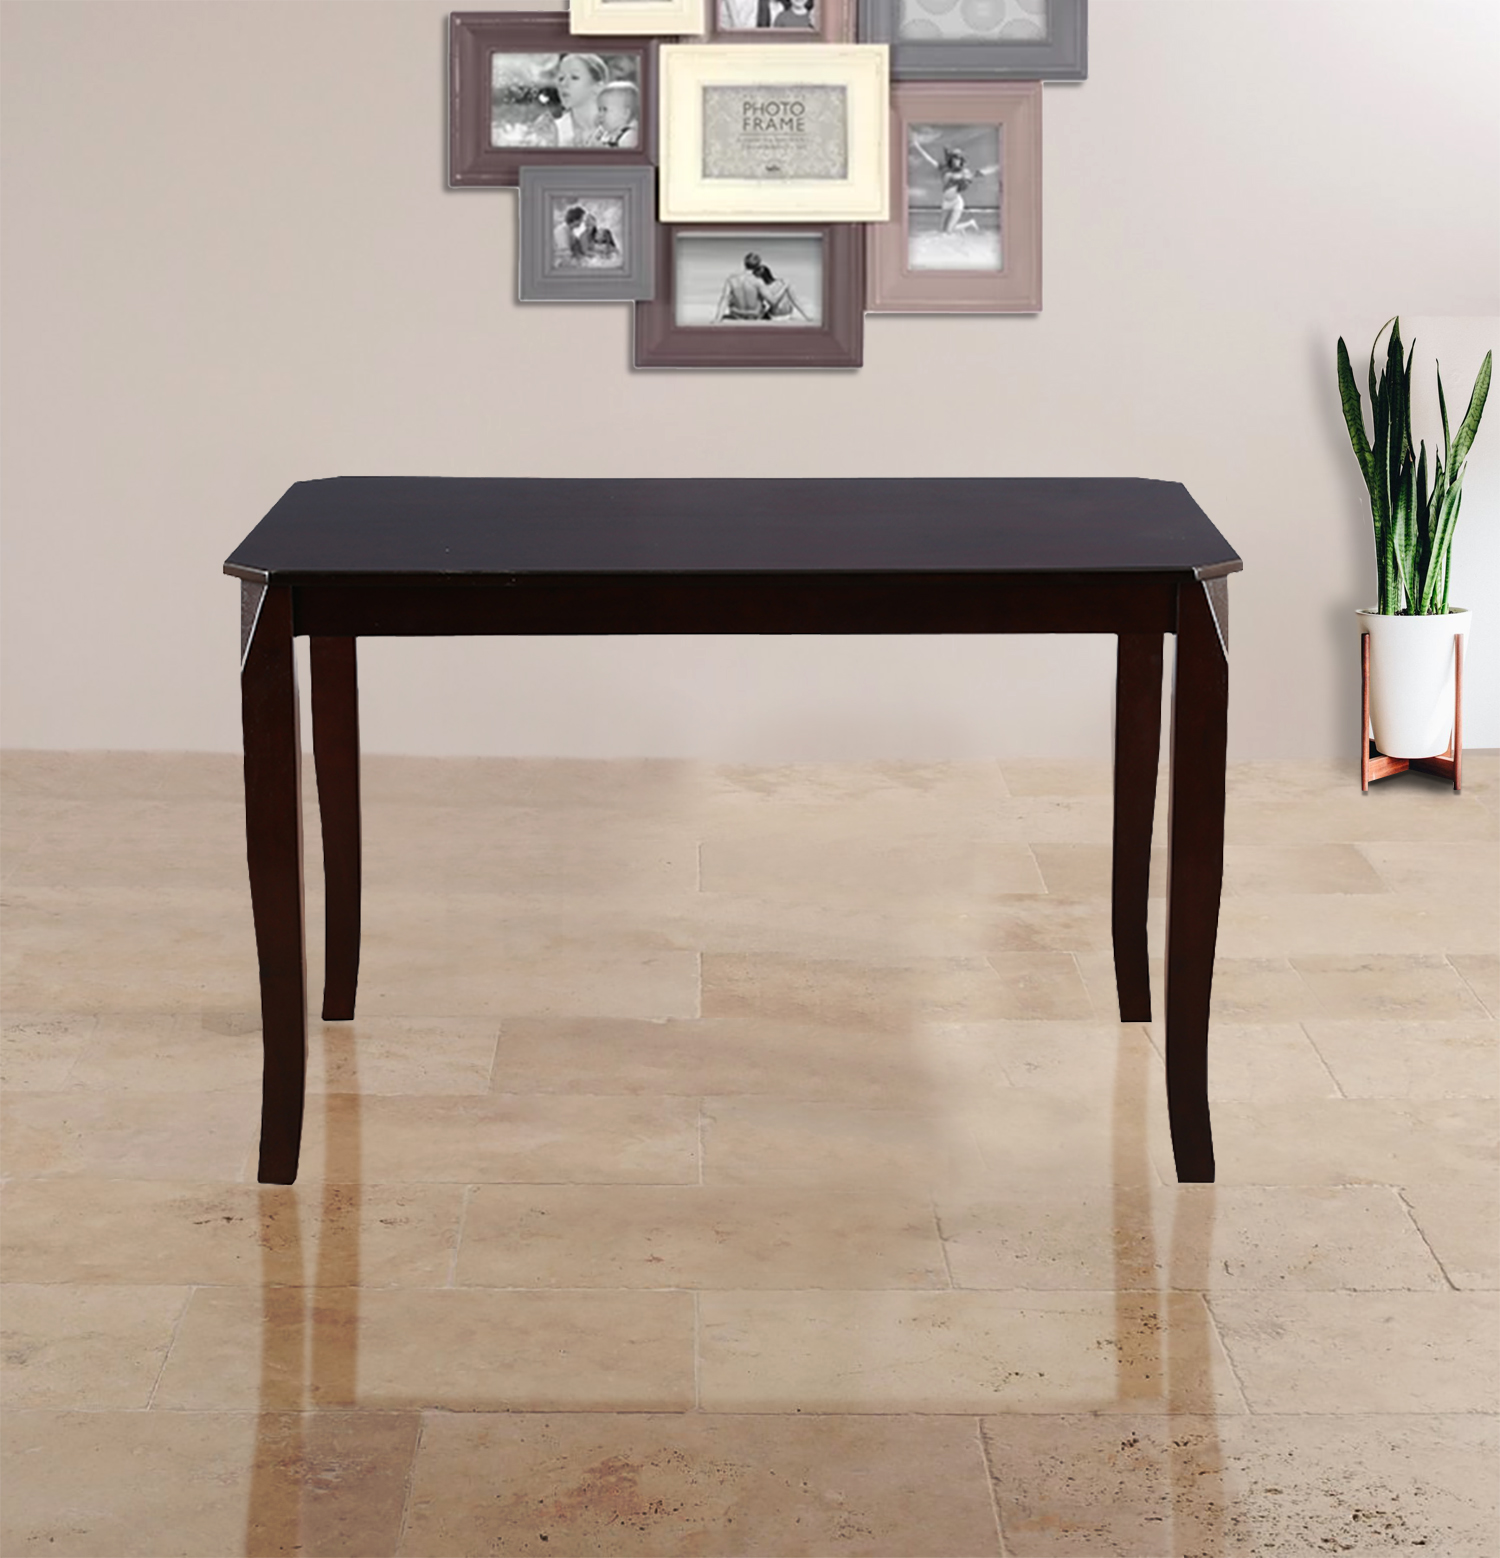 Cardiff Rubber Wood Four Seater Dining Table in Expresso Colour by HomeTown